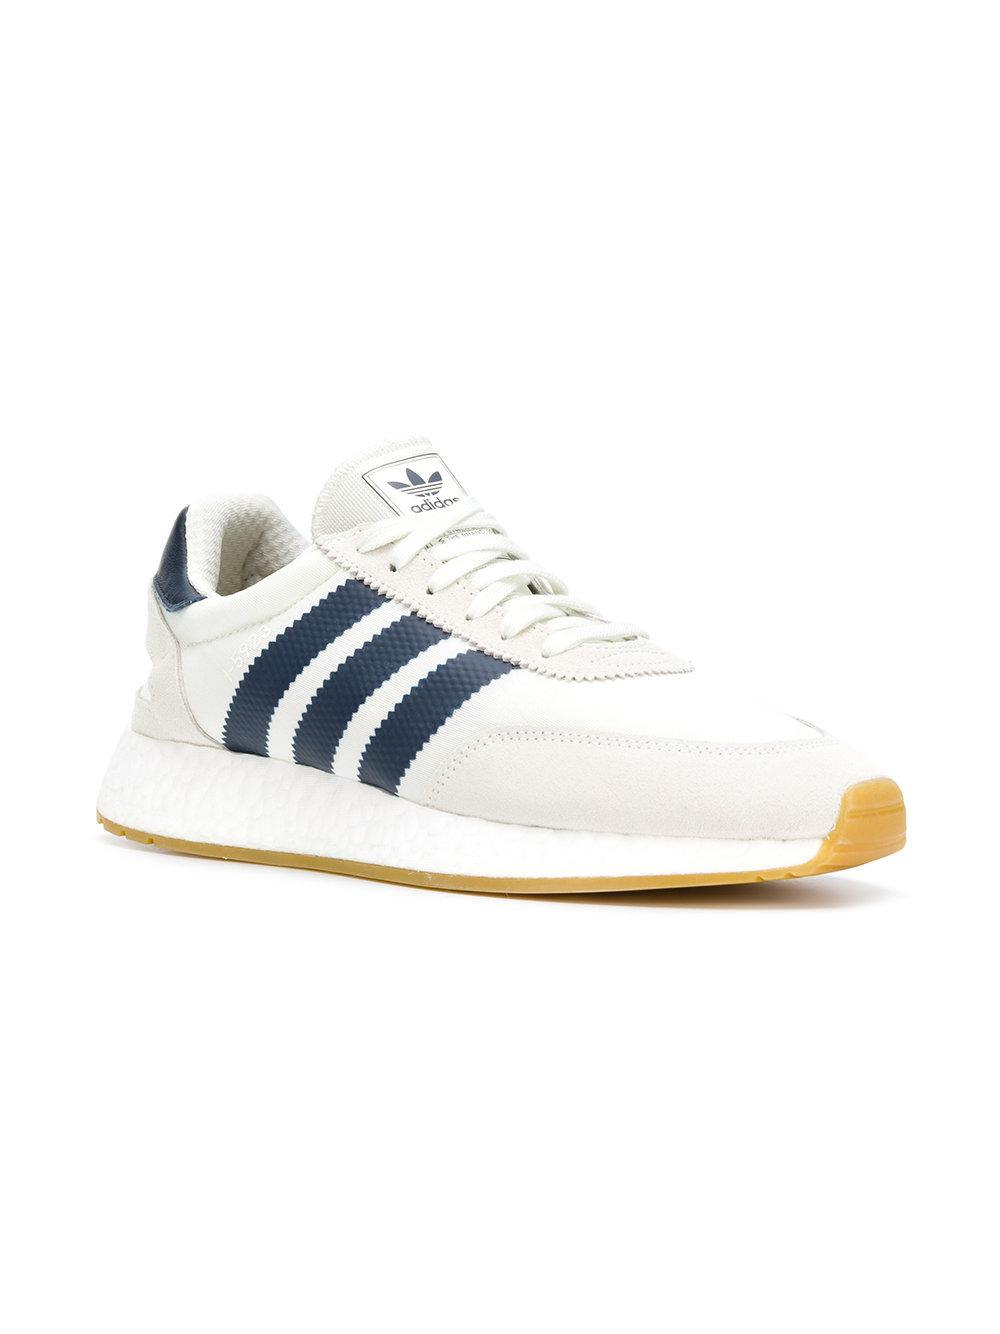 lowest price 8aa72 92d6f Adidas - White I-5923 Sneakers - Lyst. View fullscreen